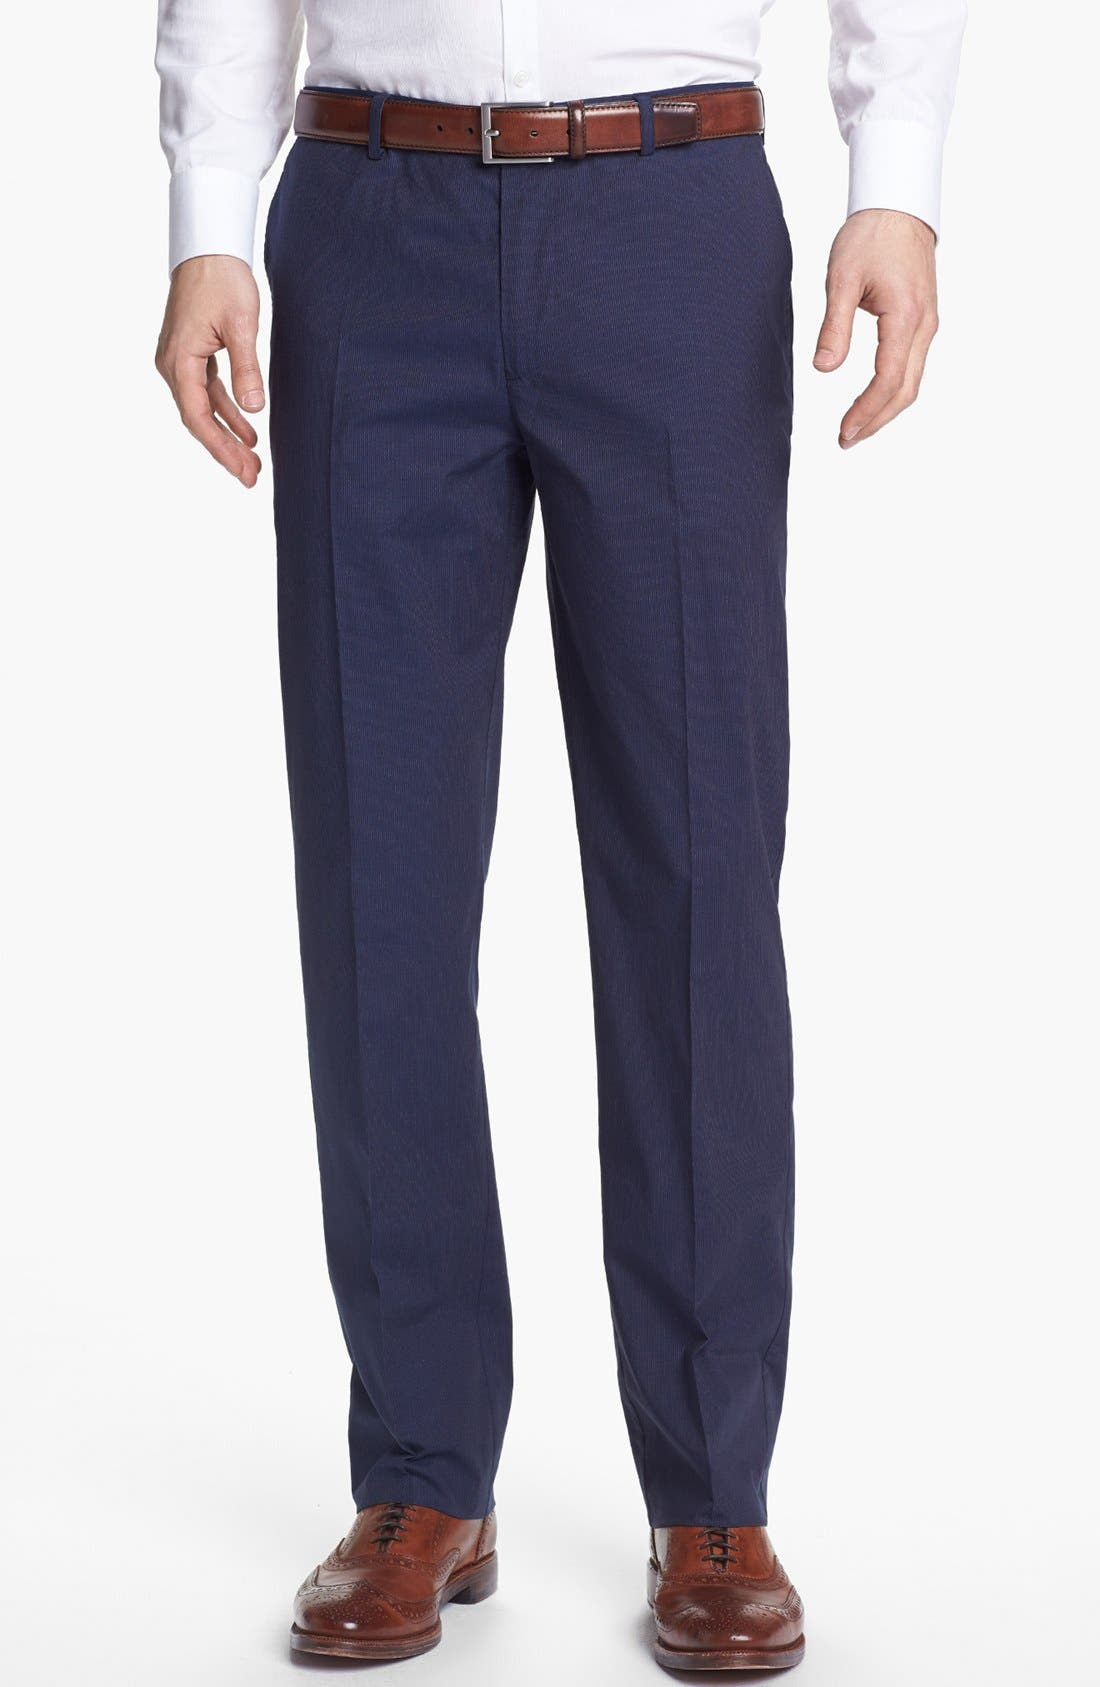 Alternate Image 1 Selected - Calibrate 'Rhoden' Stripe Trousers (Tall)